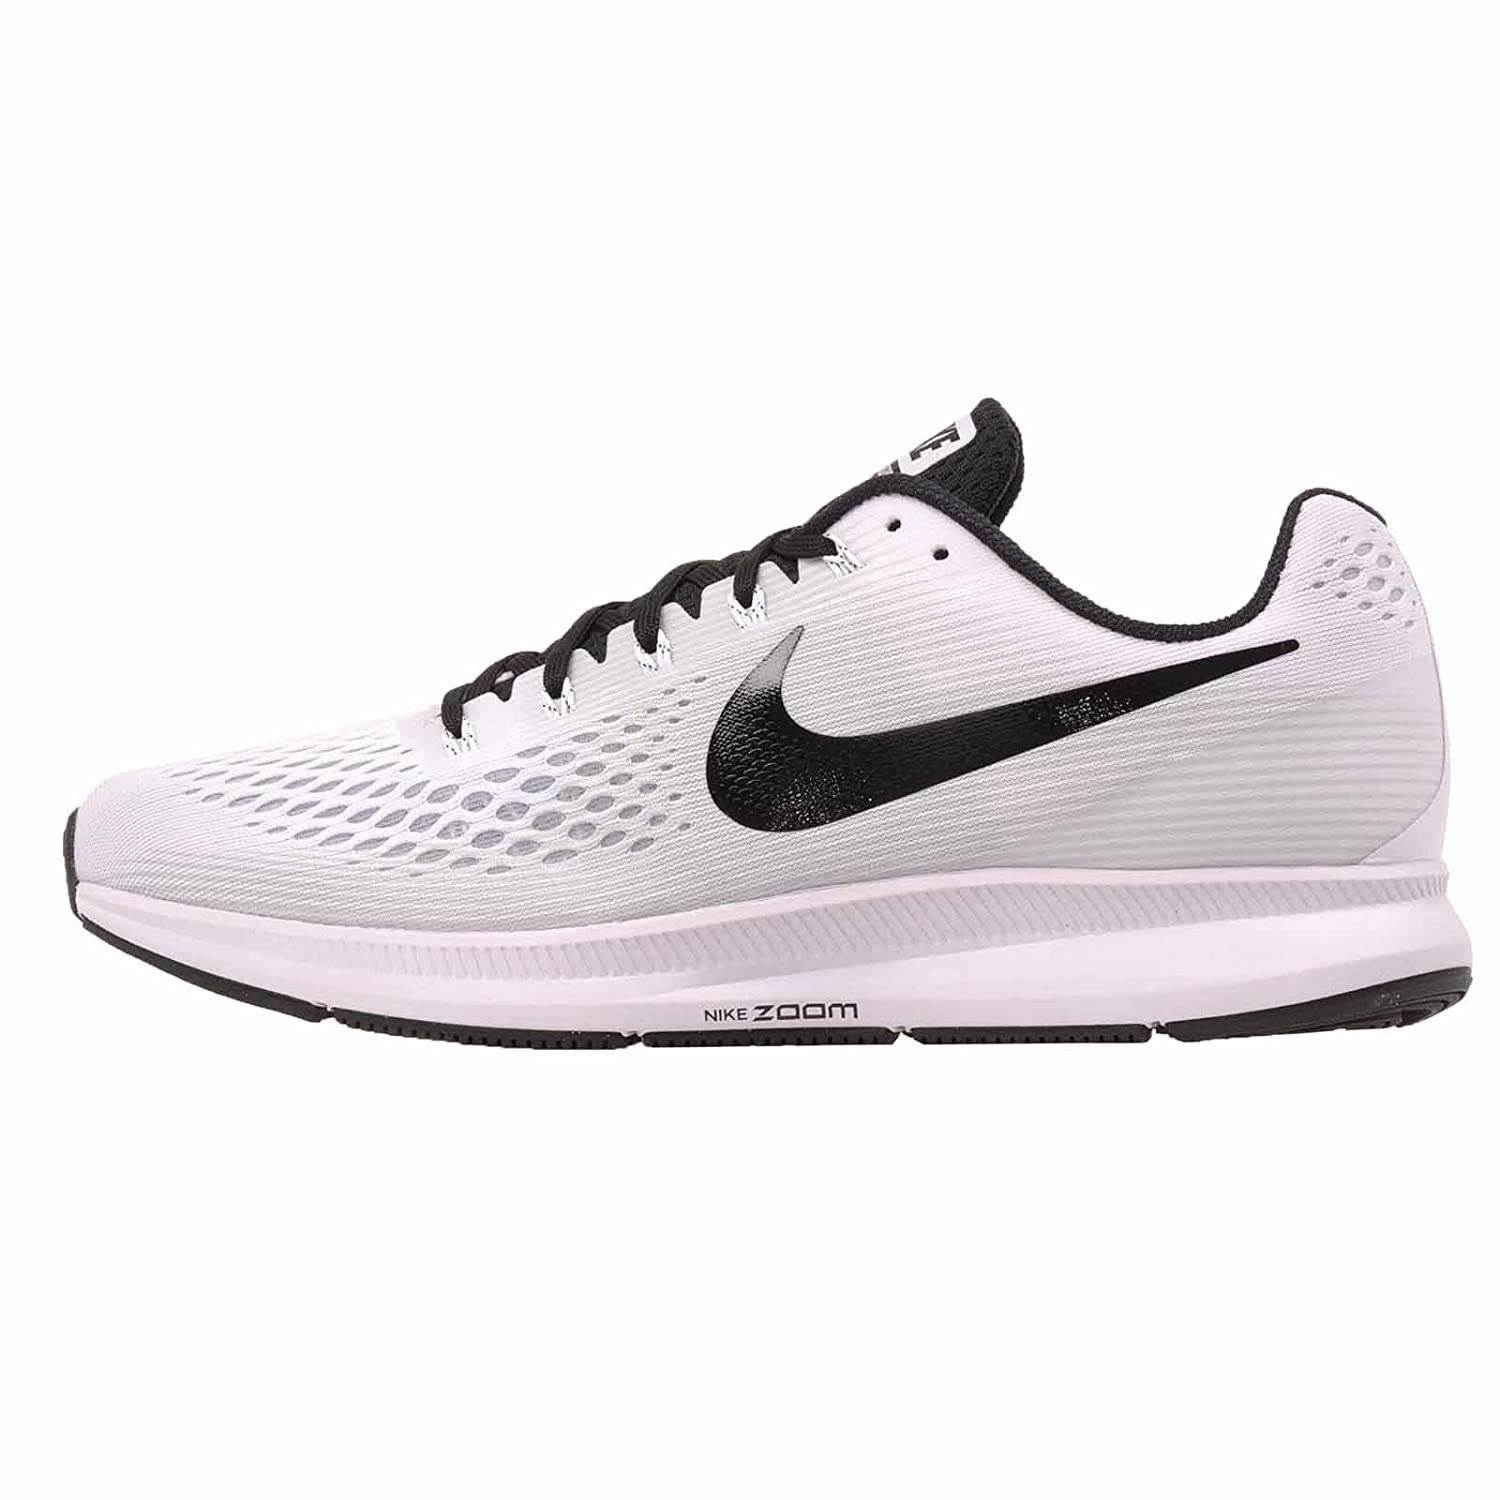 reputable site e7d4c 8e4a6 Nike Men's Air Zoom Pegasus 34 TB, White/Black, 10 M US